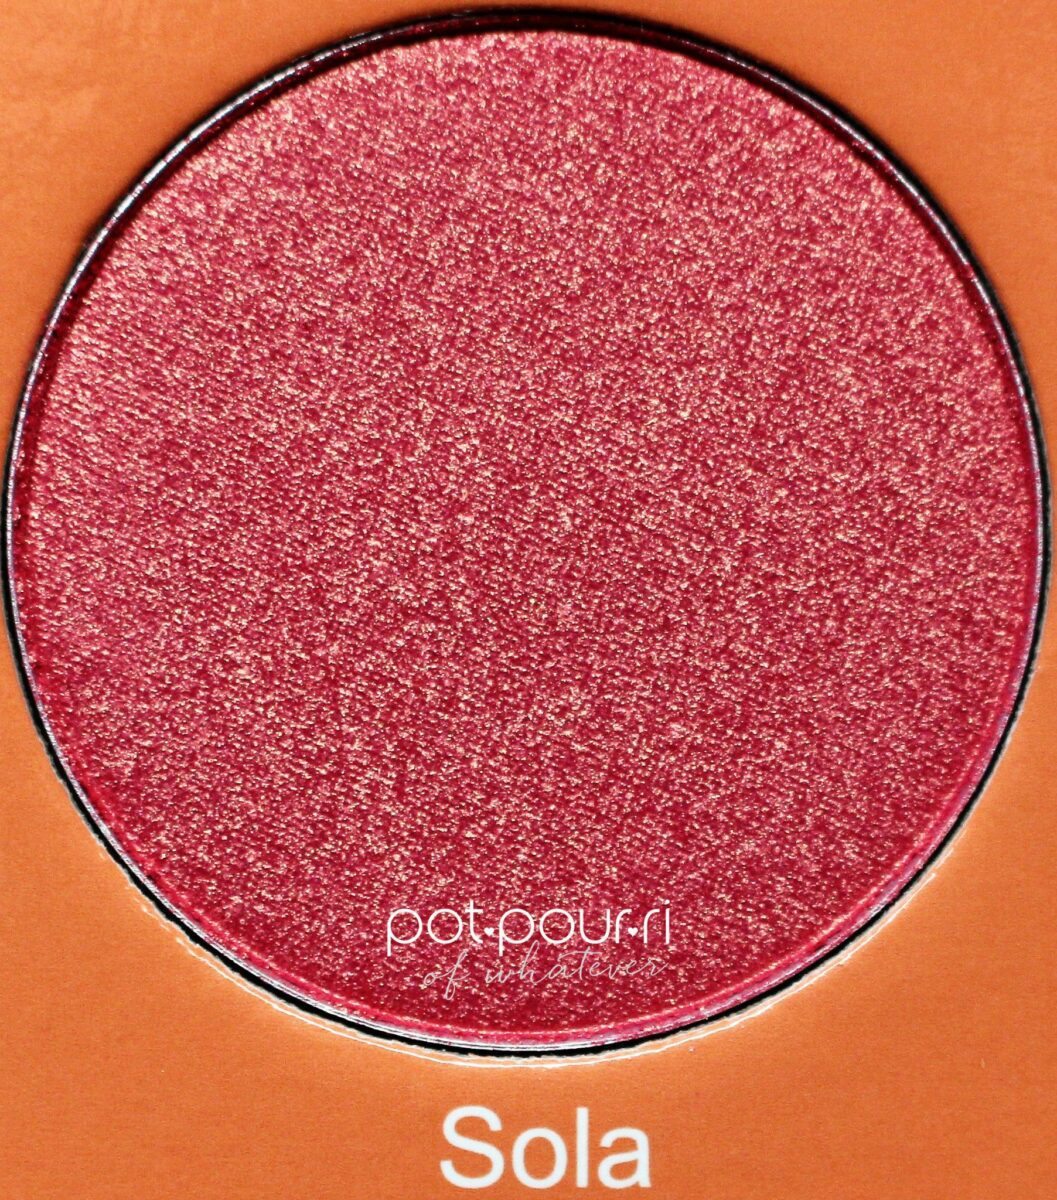 Juvia-saharan-blush-palette-vol-11-Sola-bright-pink-orange-duochrome-shimmer